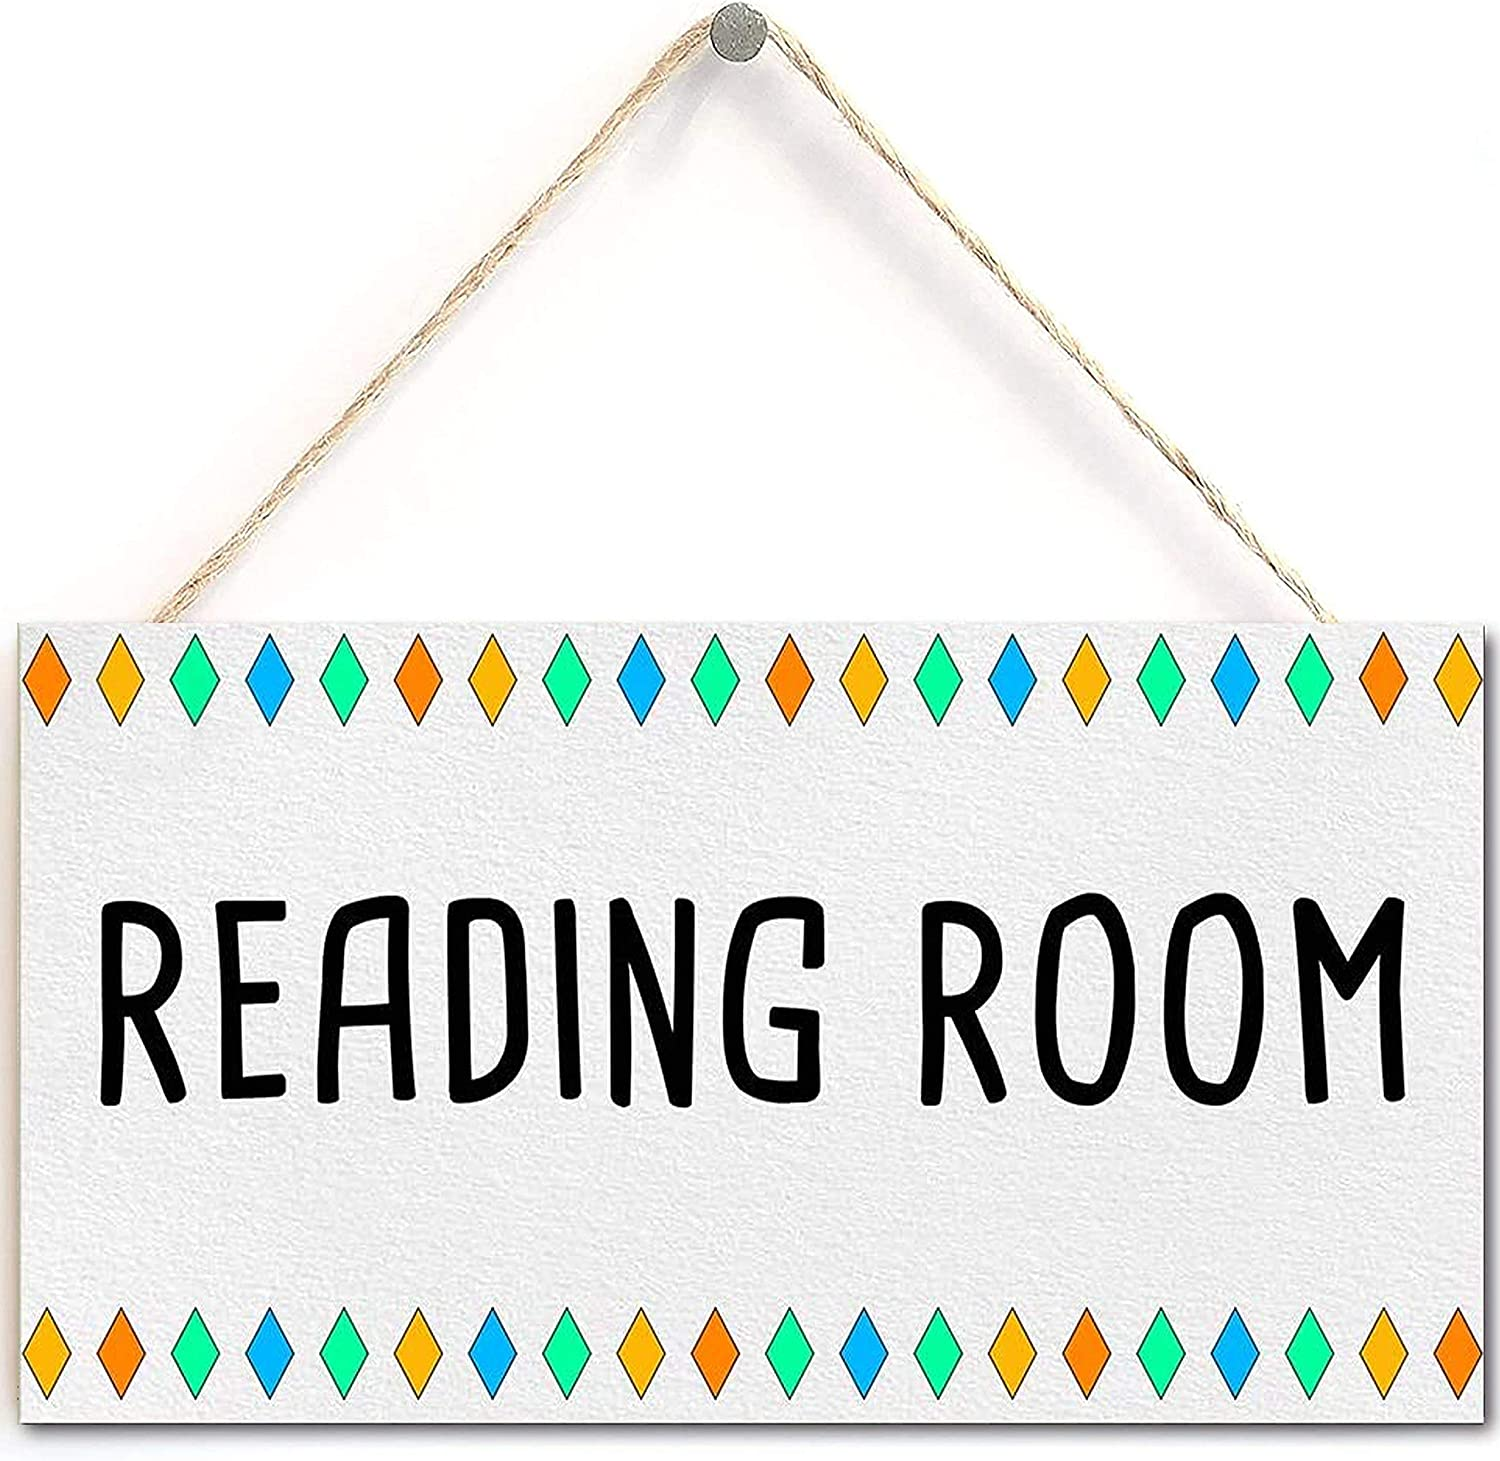 i Reading Room - Library or Quiet Place Door Wall Sign Gift for Book Lovers,Book Worm,Librarian (5 'X 10')